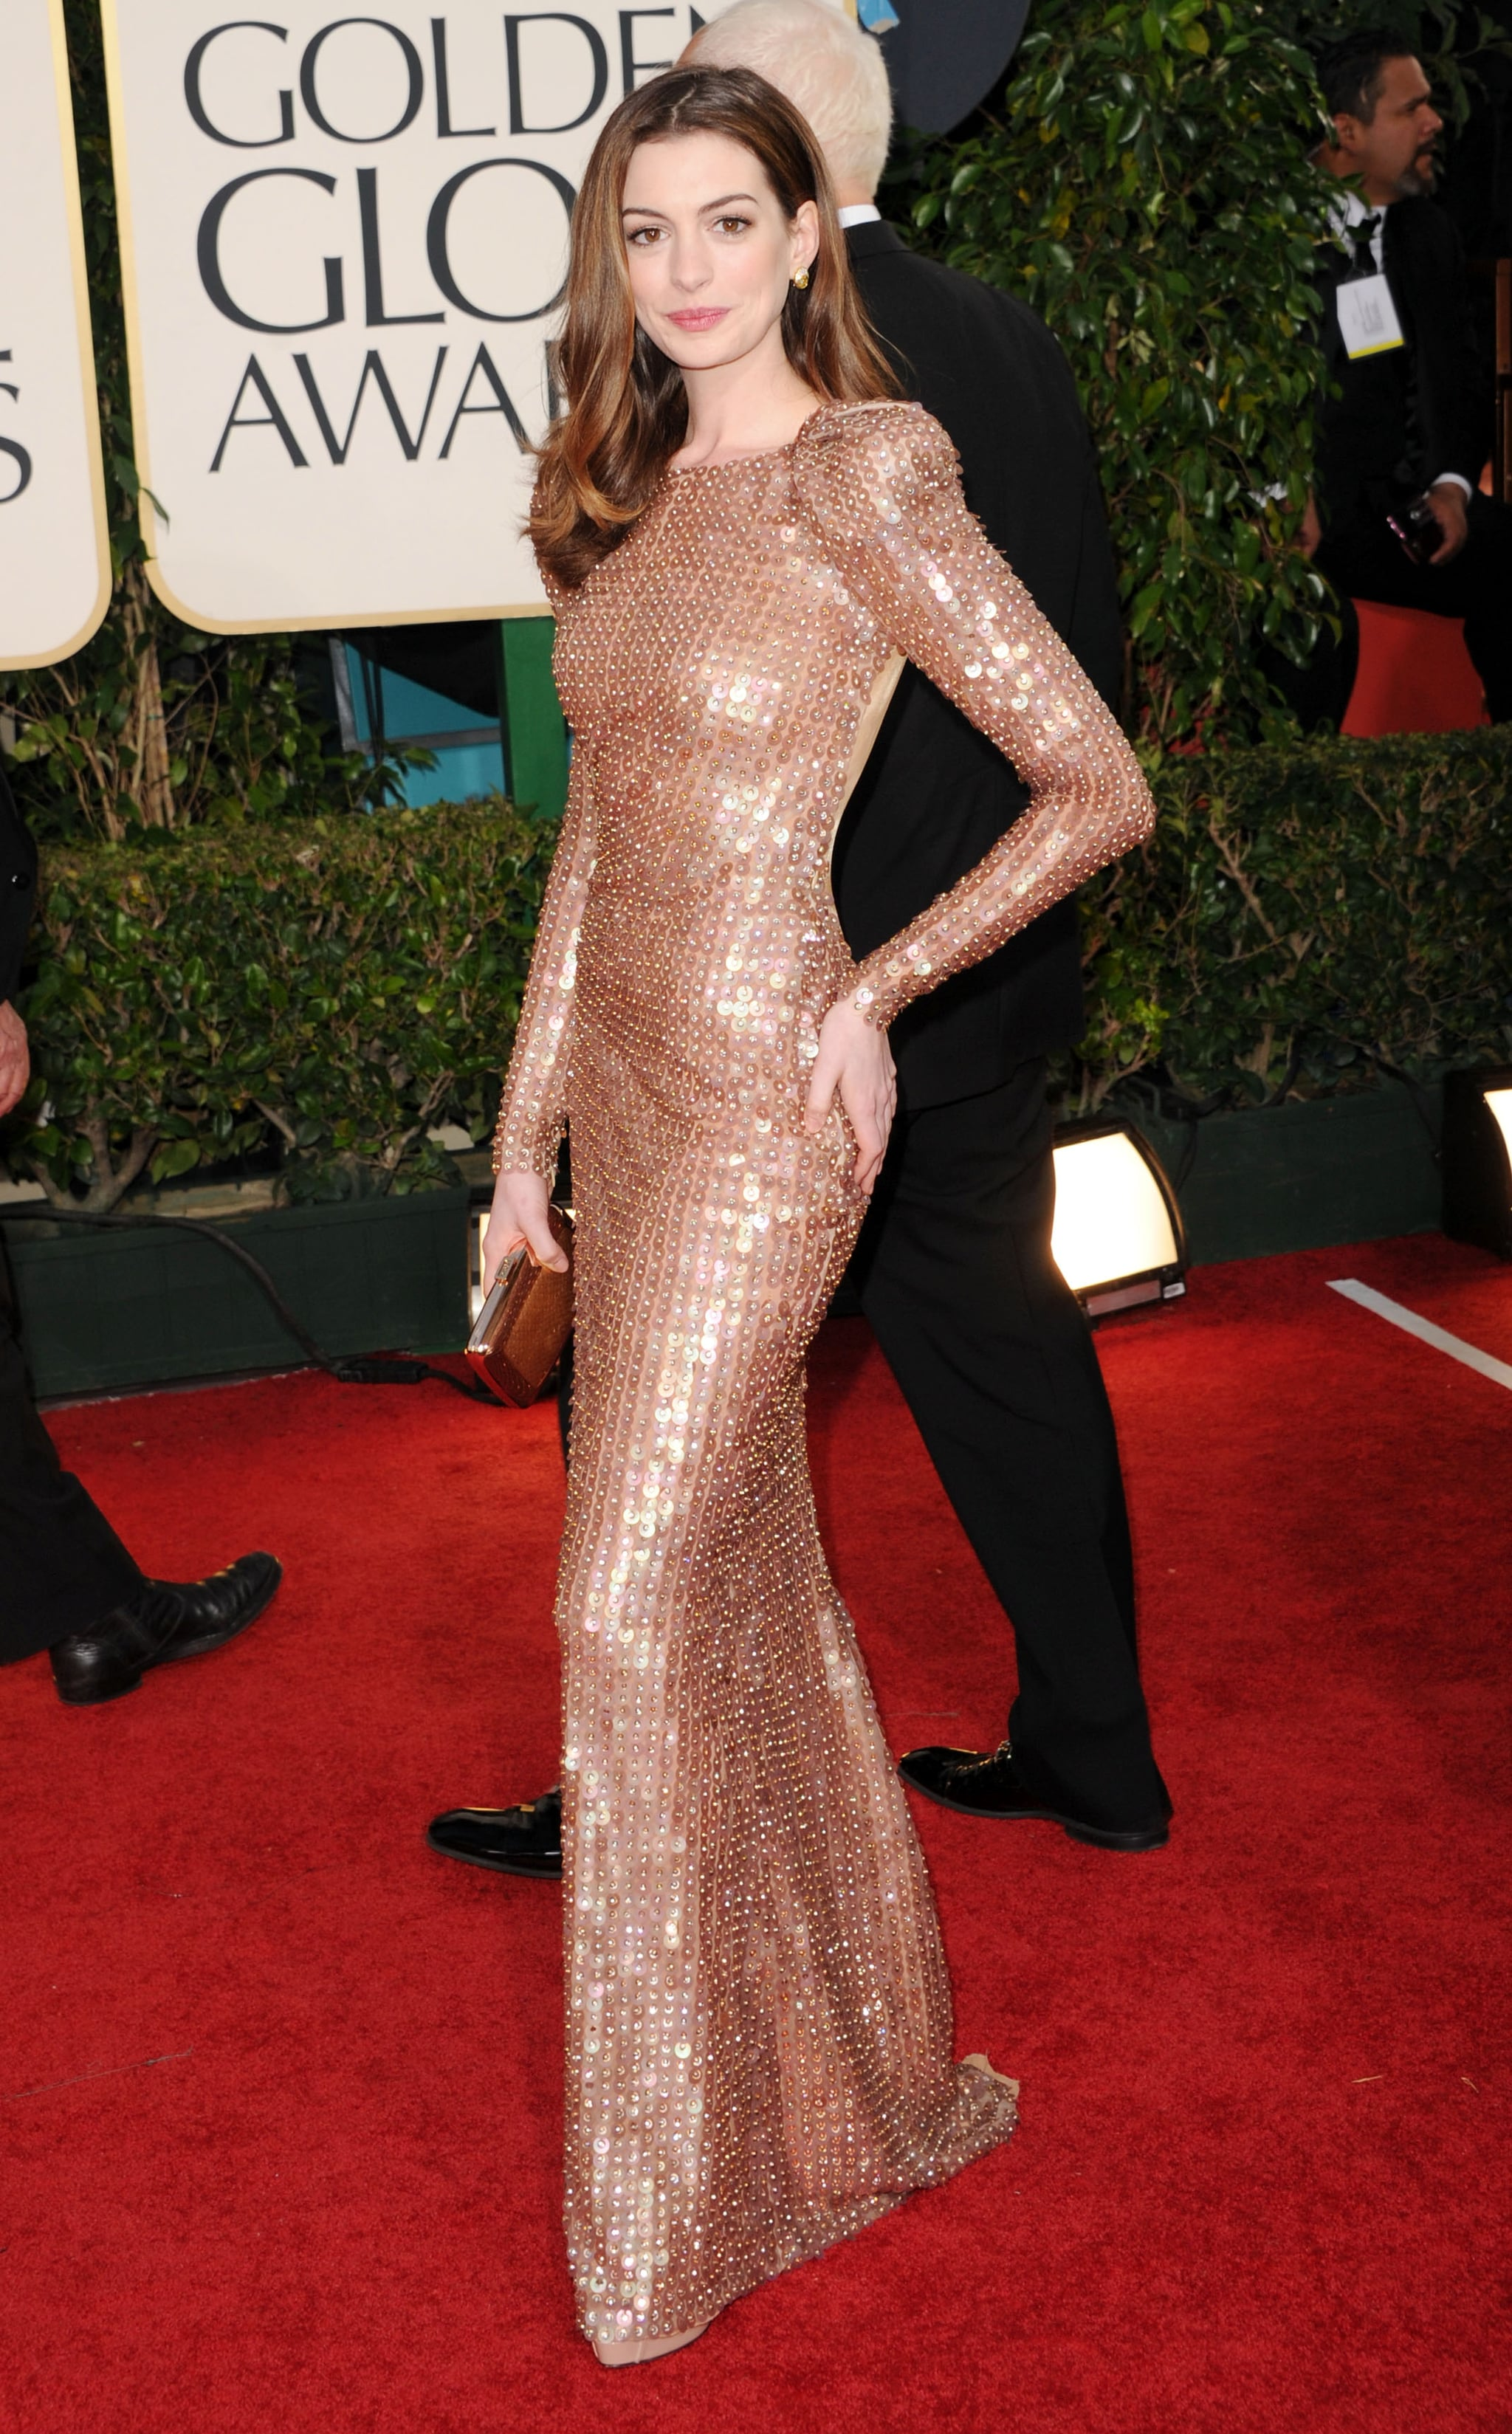 Anne Hathaway in Armani in 2011.